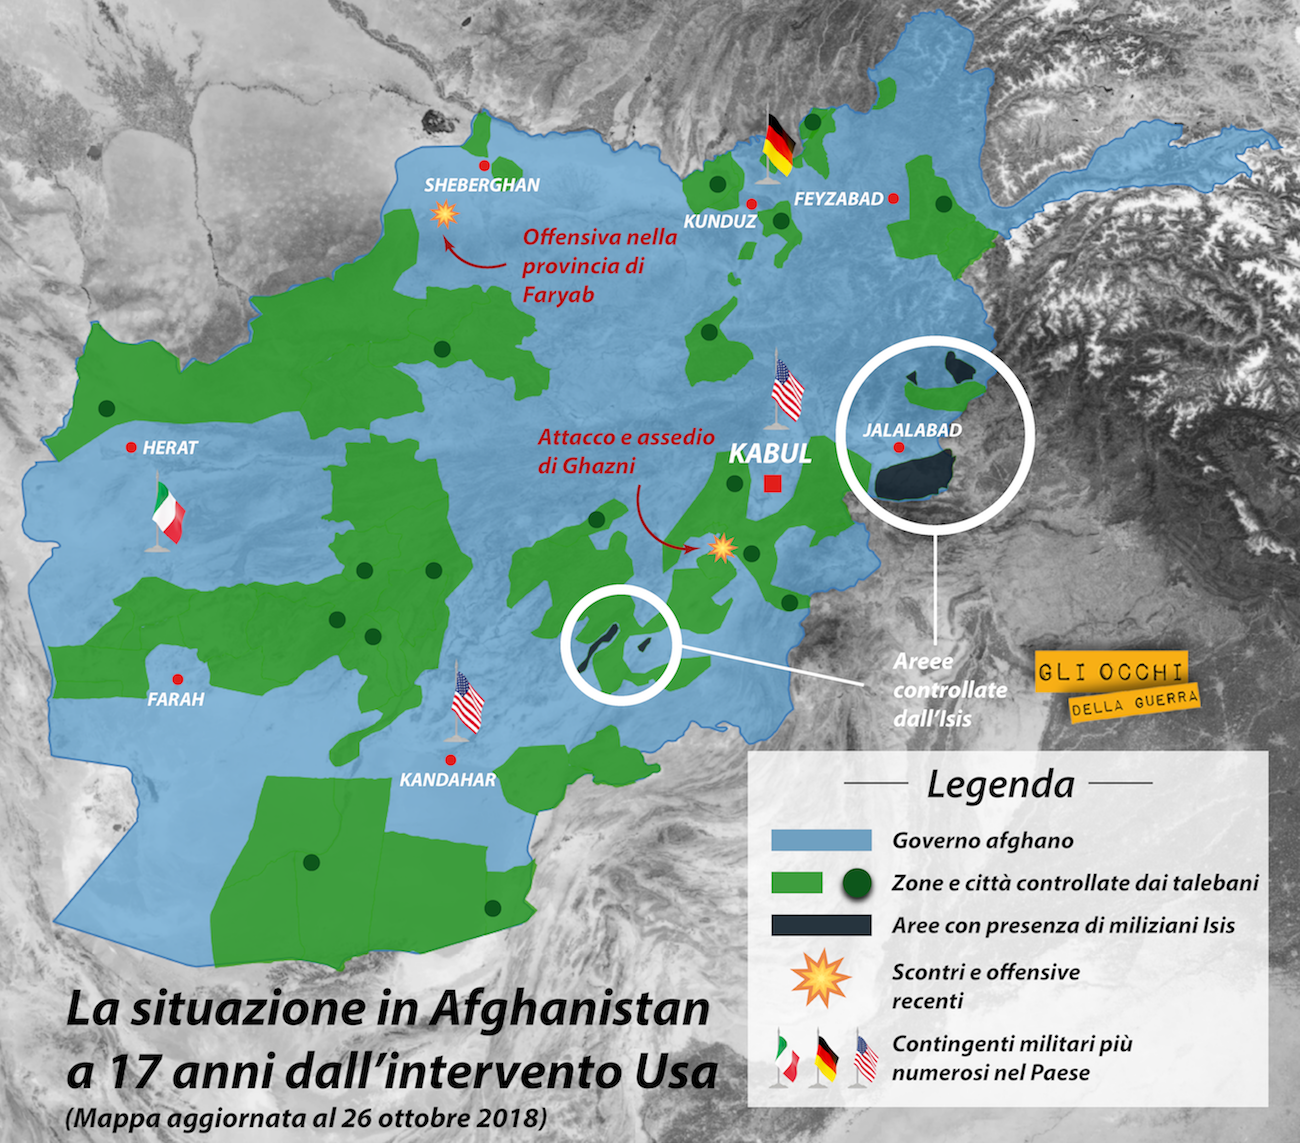 situazione in afghanistan